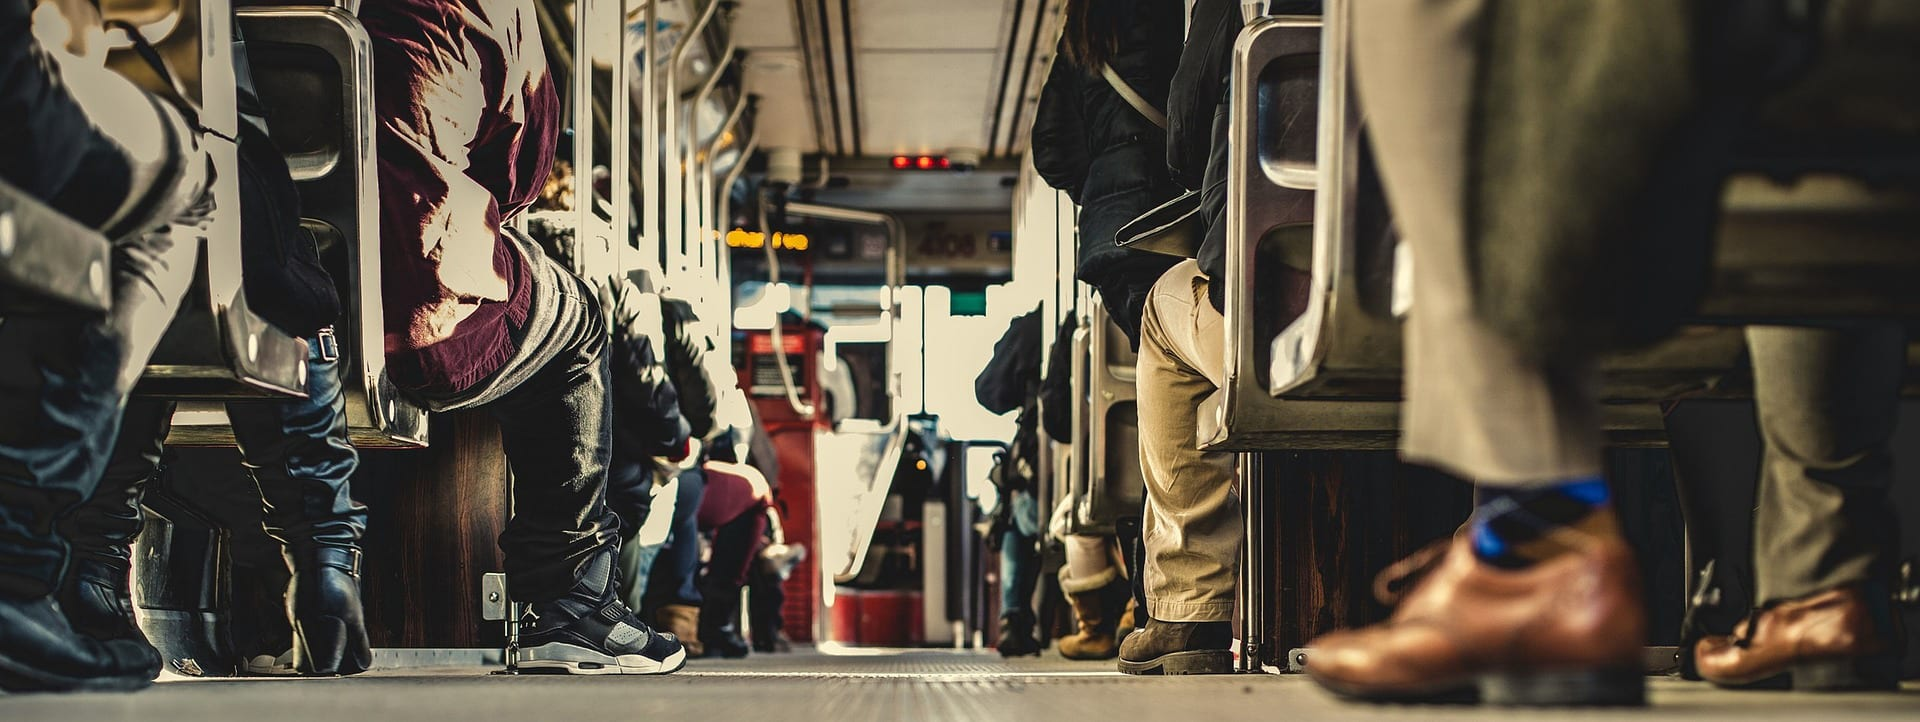 "Want to futureproof your business? Help your colleagues ""can"" their commute"